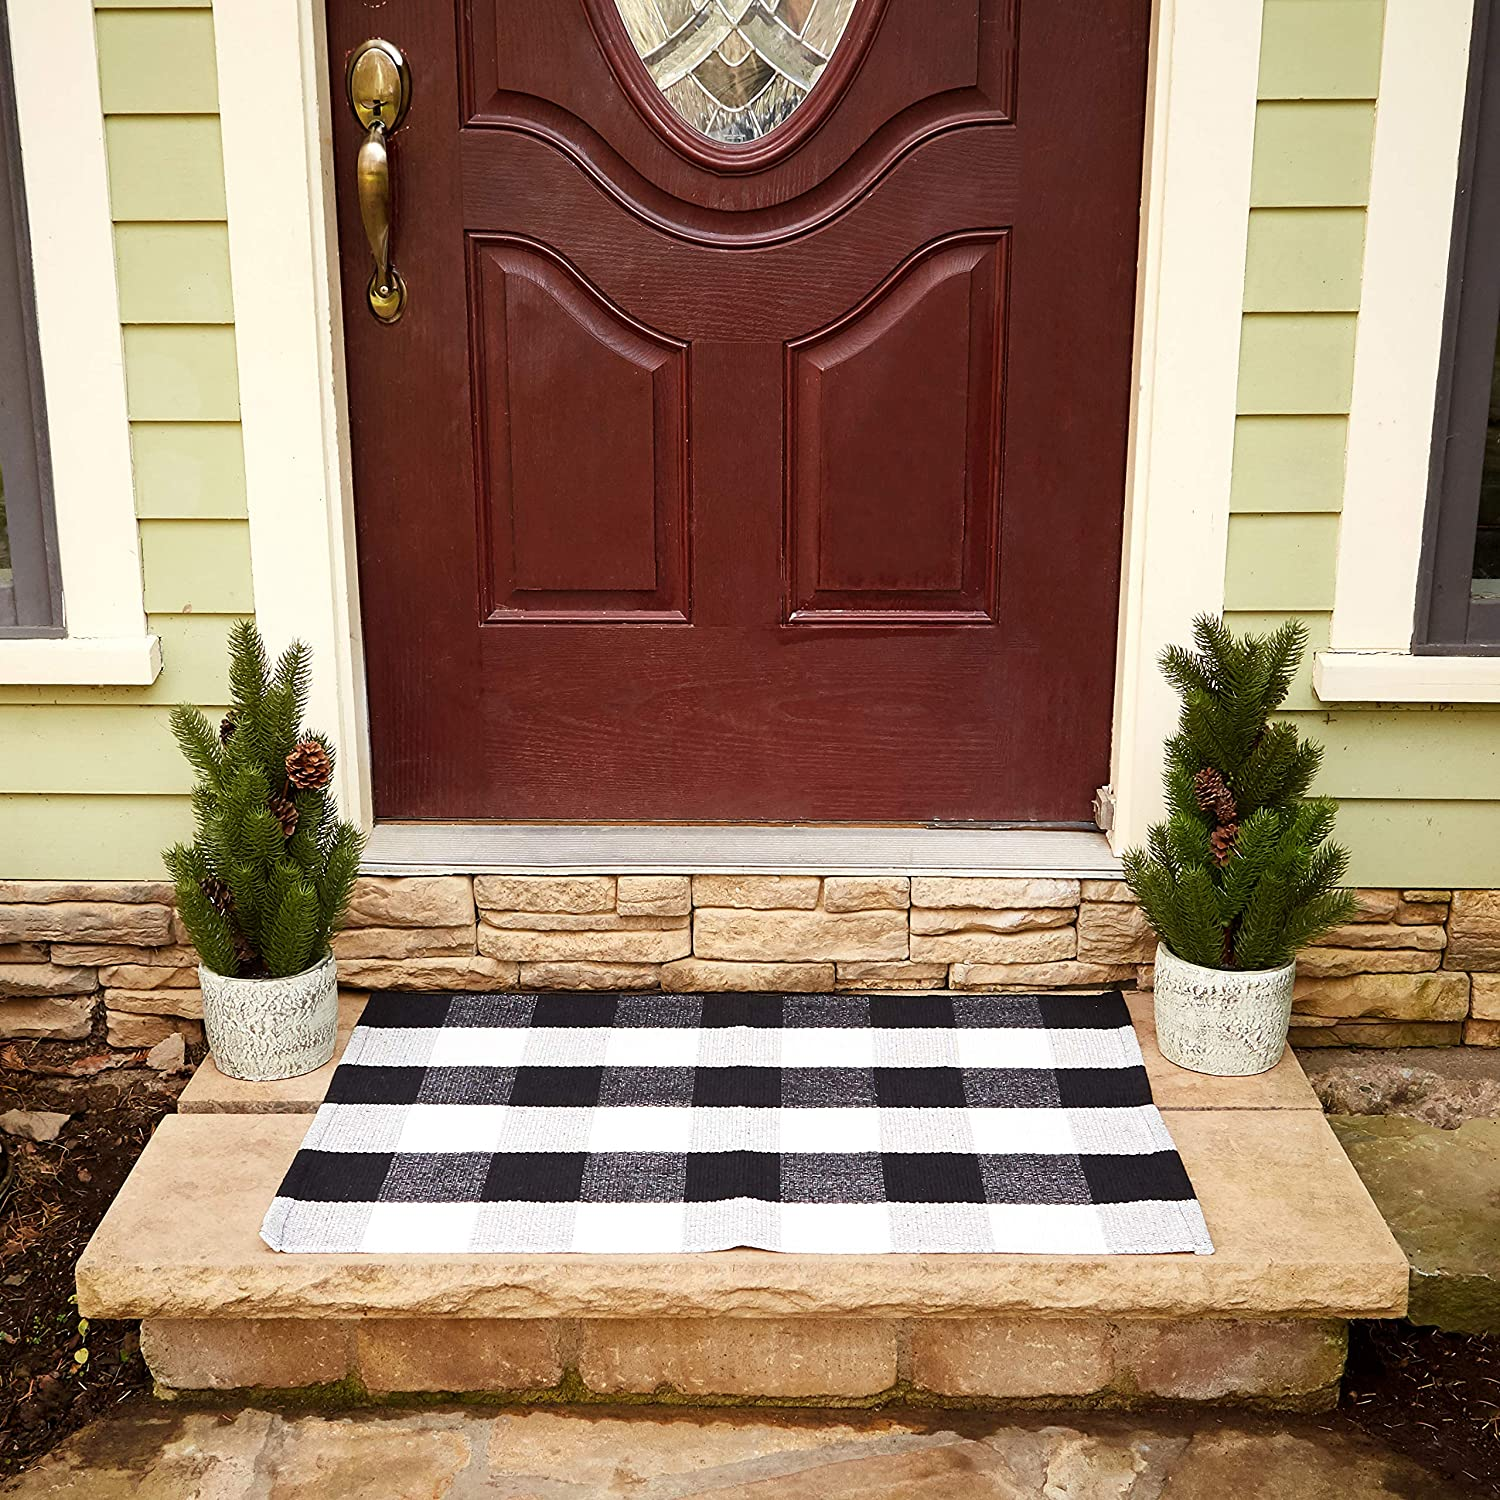 Buffalo Checkered Rug - Plaid Welcome Doormat - Outdoor/Indoor/Door/Floor/Kitchen/Rugs/Front Porch/Bathroom/Laundry Room/Bedroom - White/Black Outside Mat - House Flannel Doormats - 24inch x 36inch